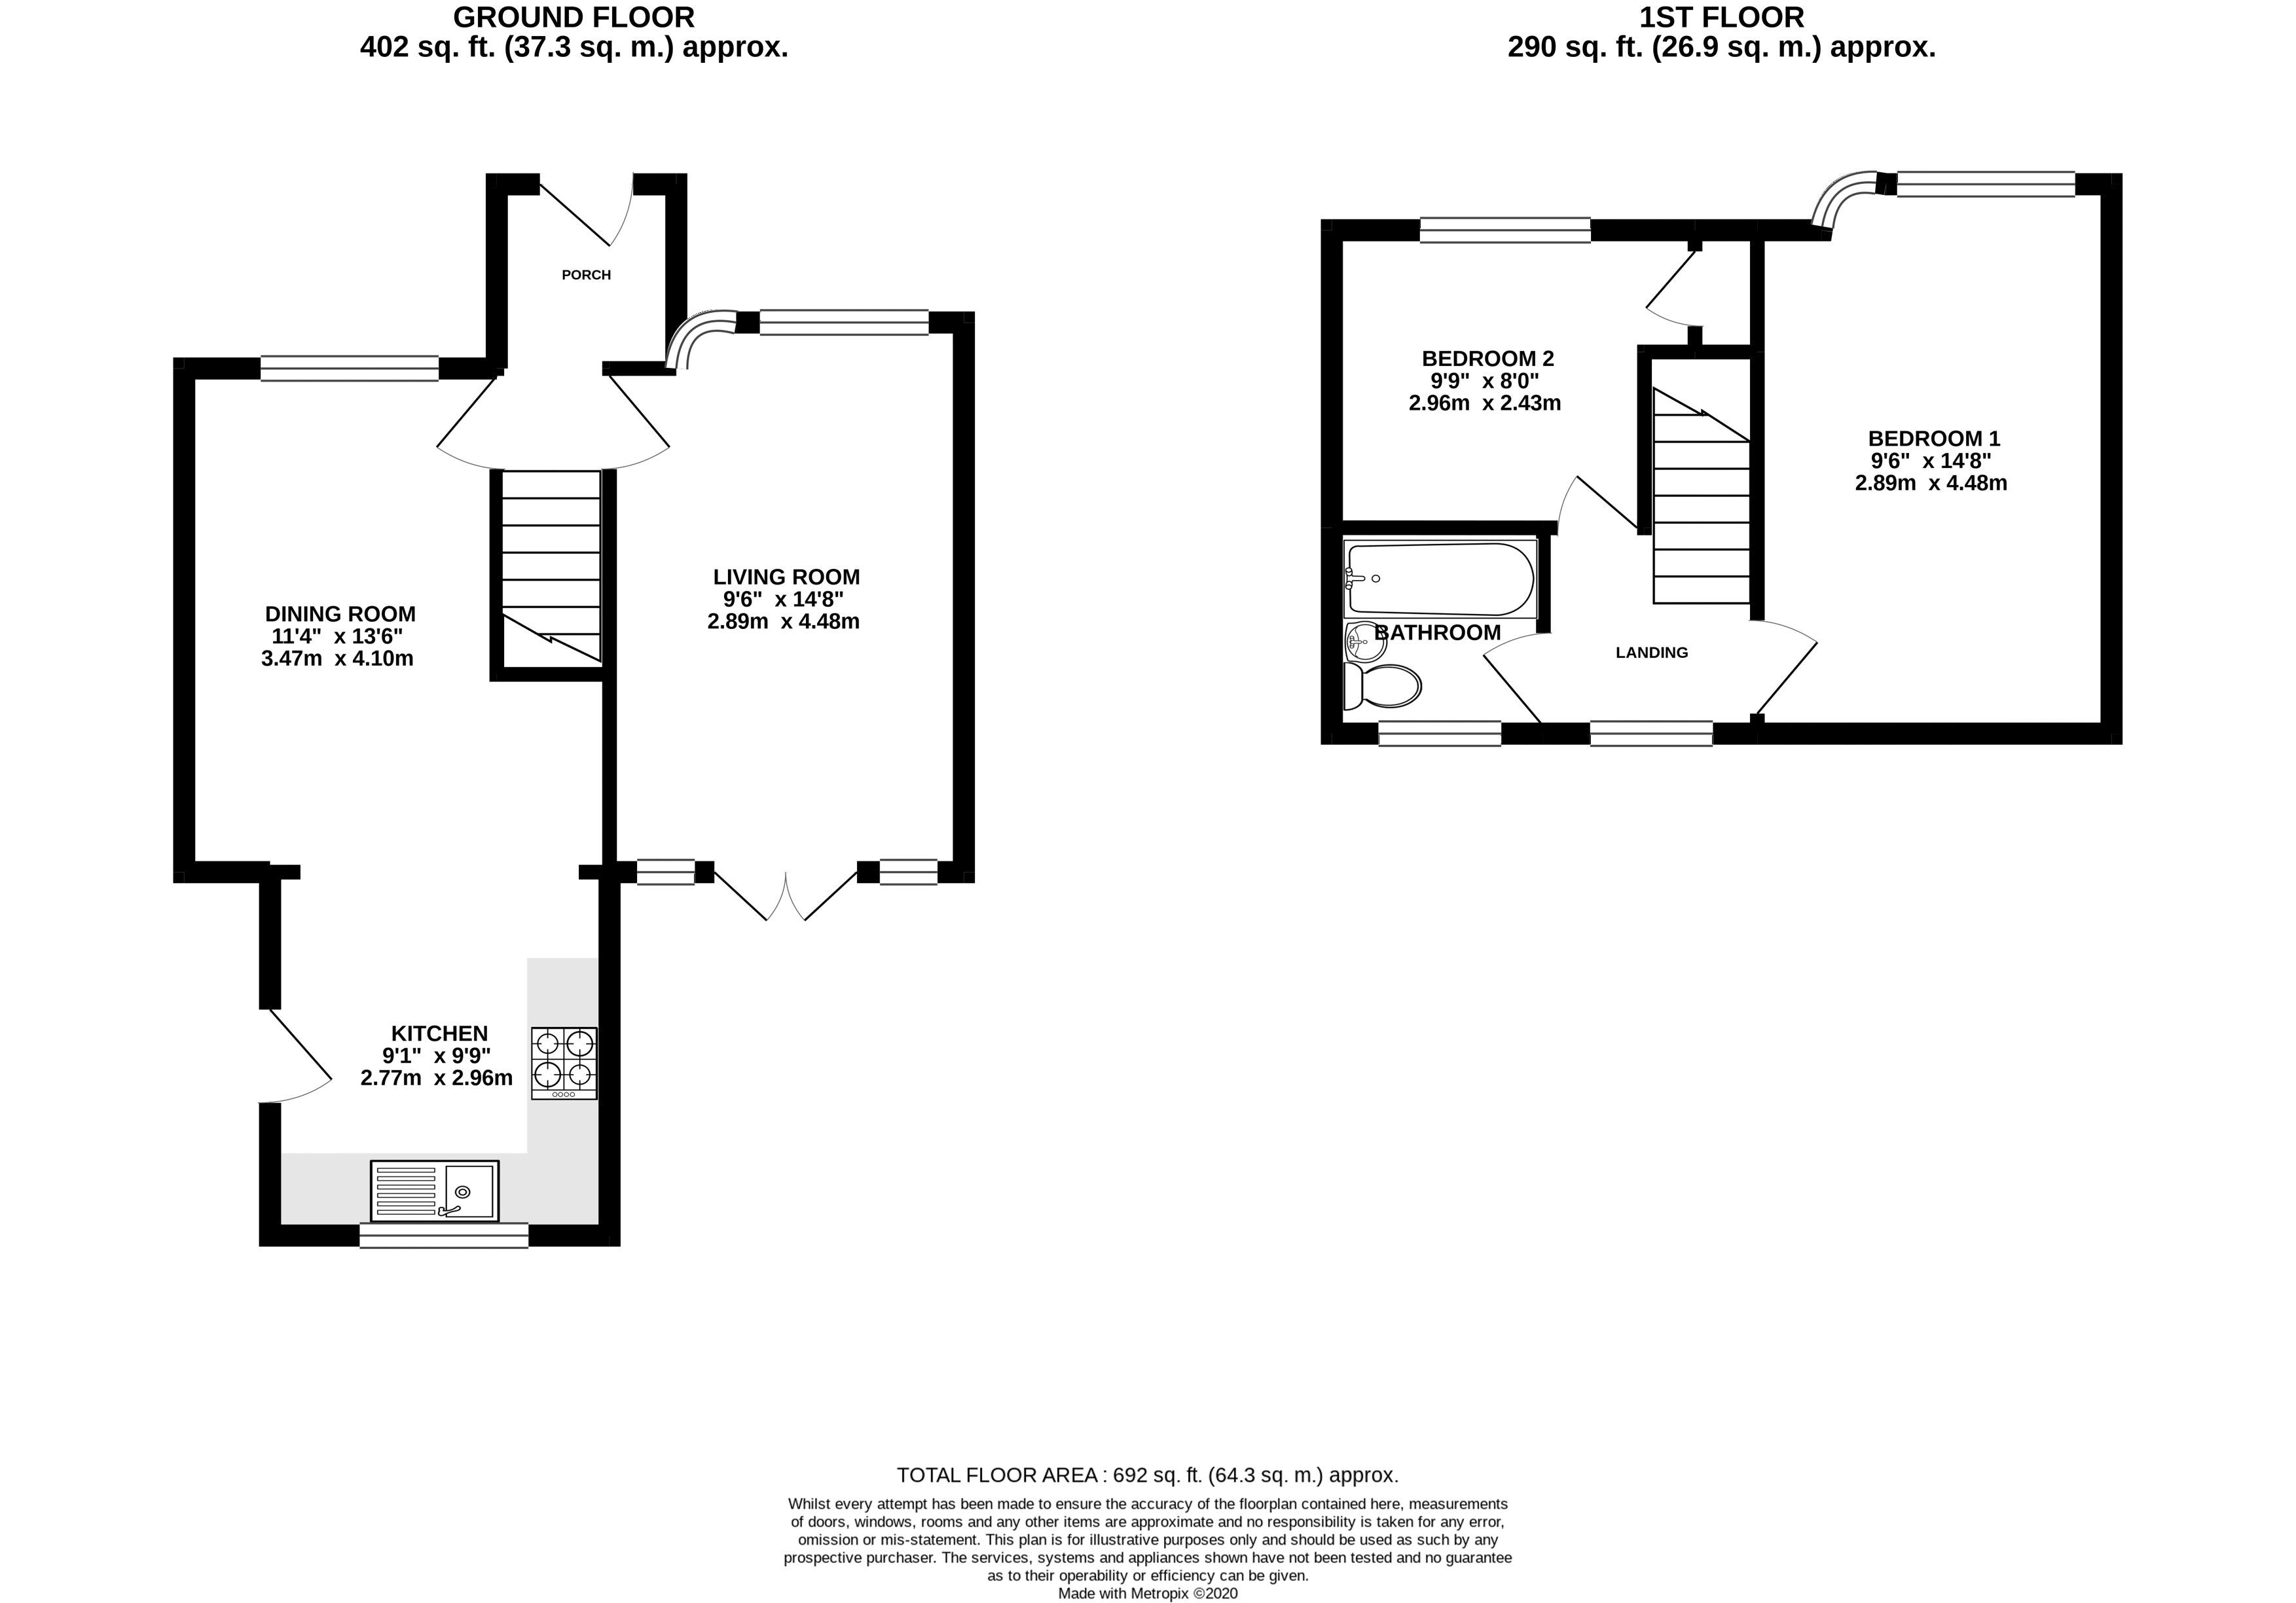 Floor plans for Tangmere Road, Brighton property for sale in Patcham, Brighton by Coapt